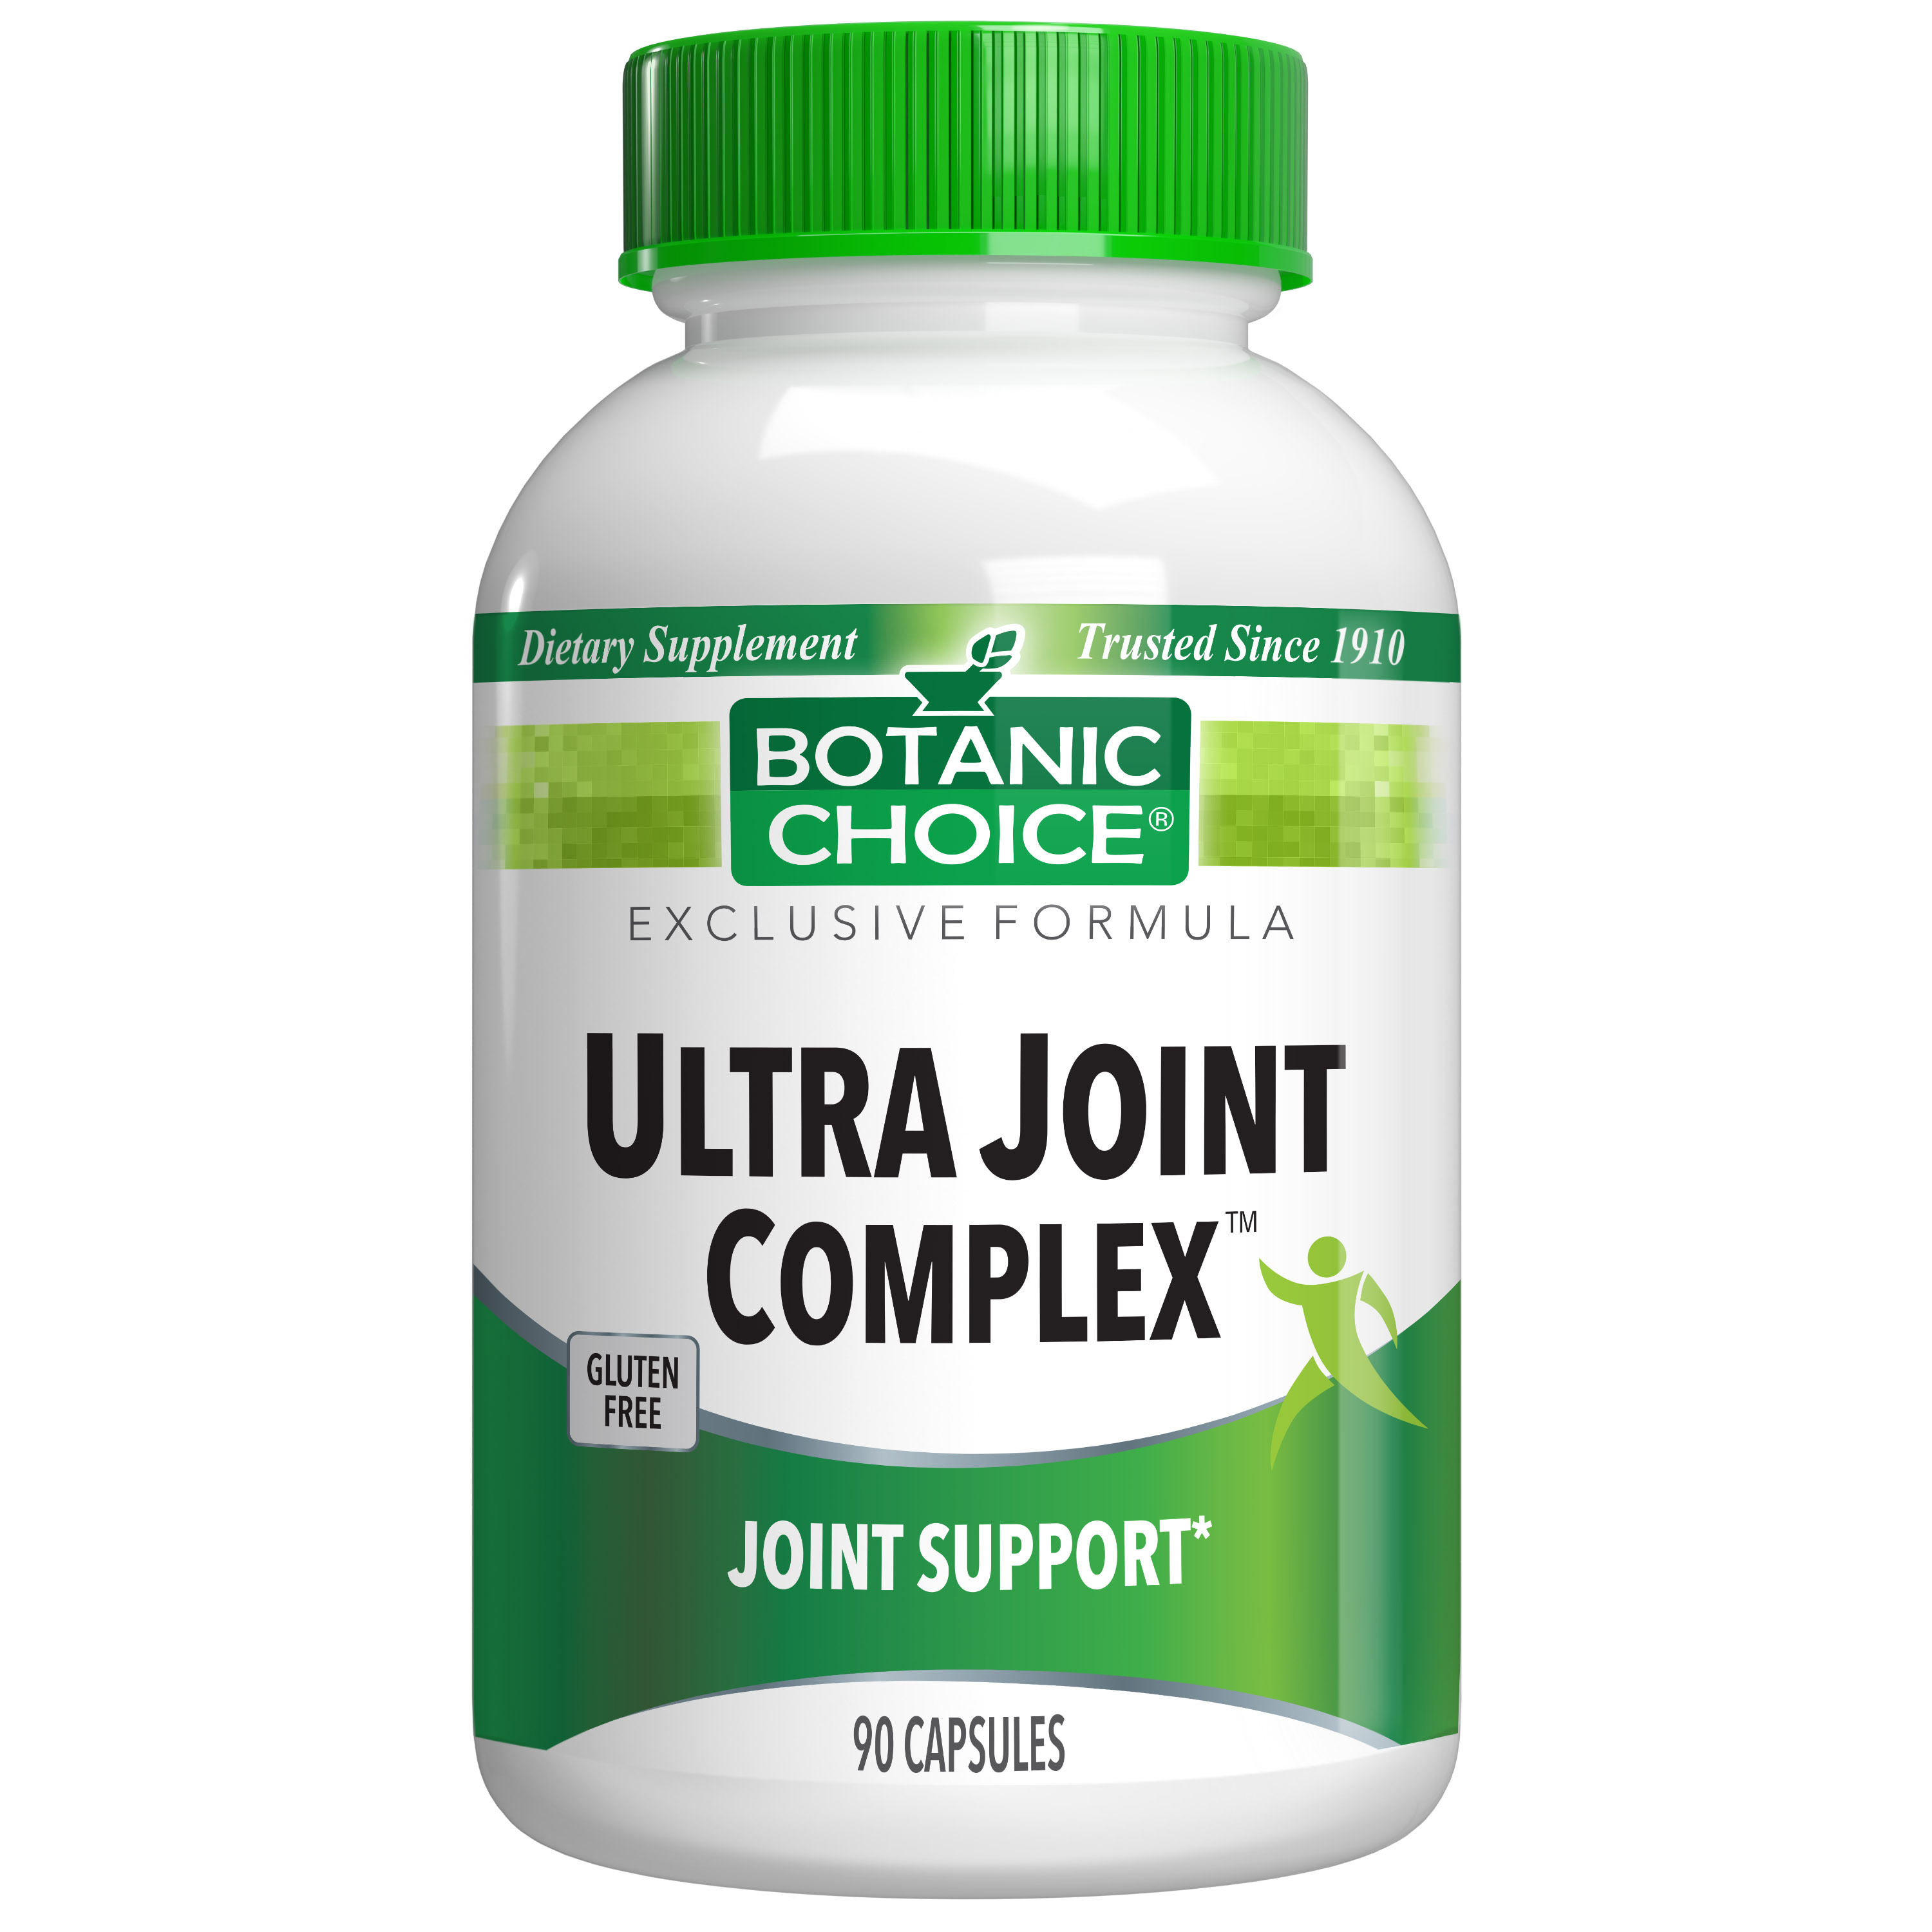 Botanic Choice Ultra Joint Complex™ - Joint Support Supplement - 90 Capsules